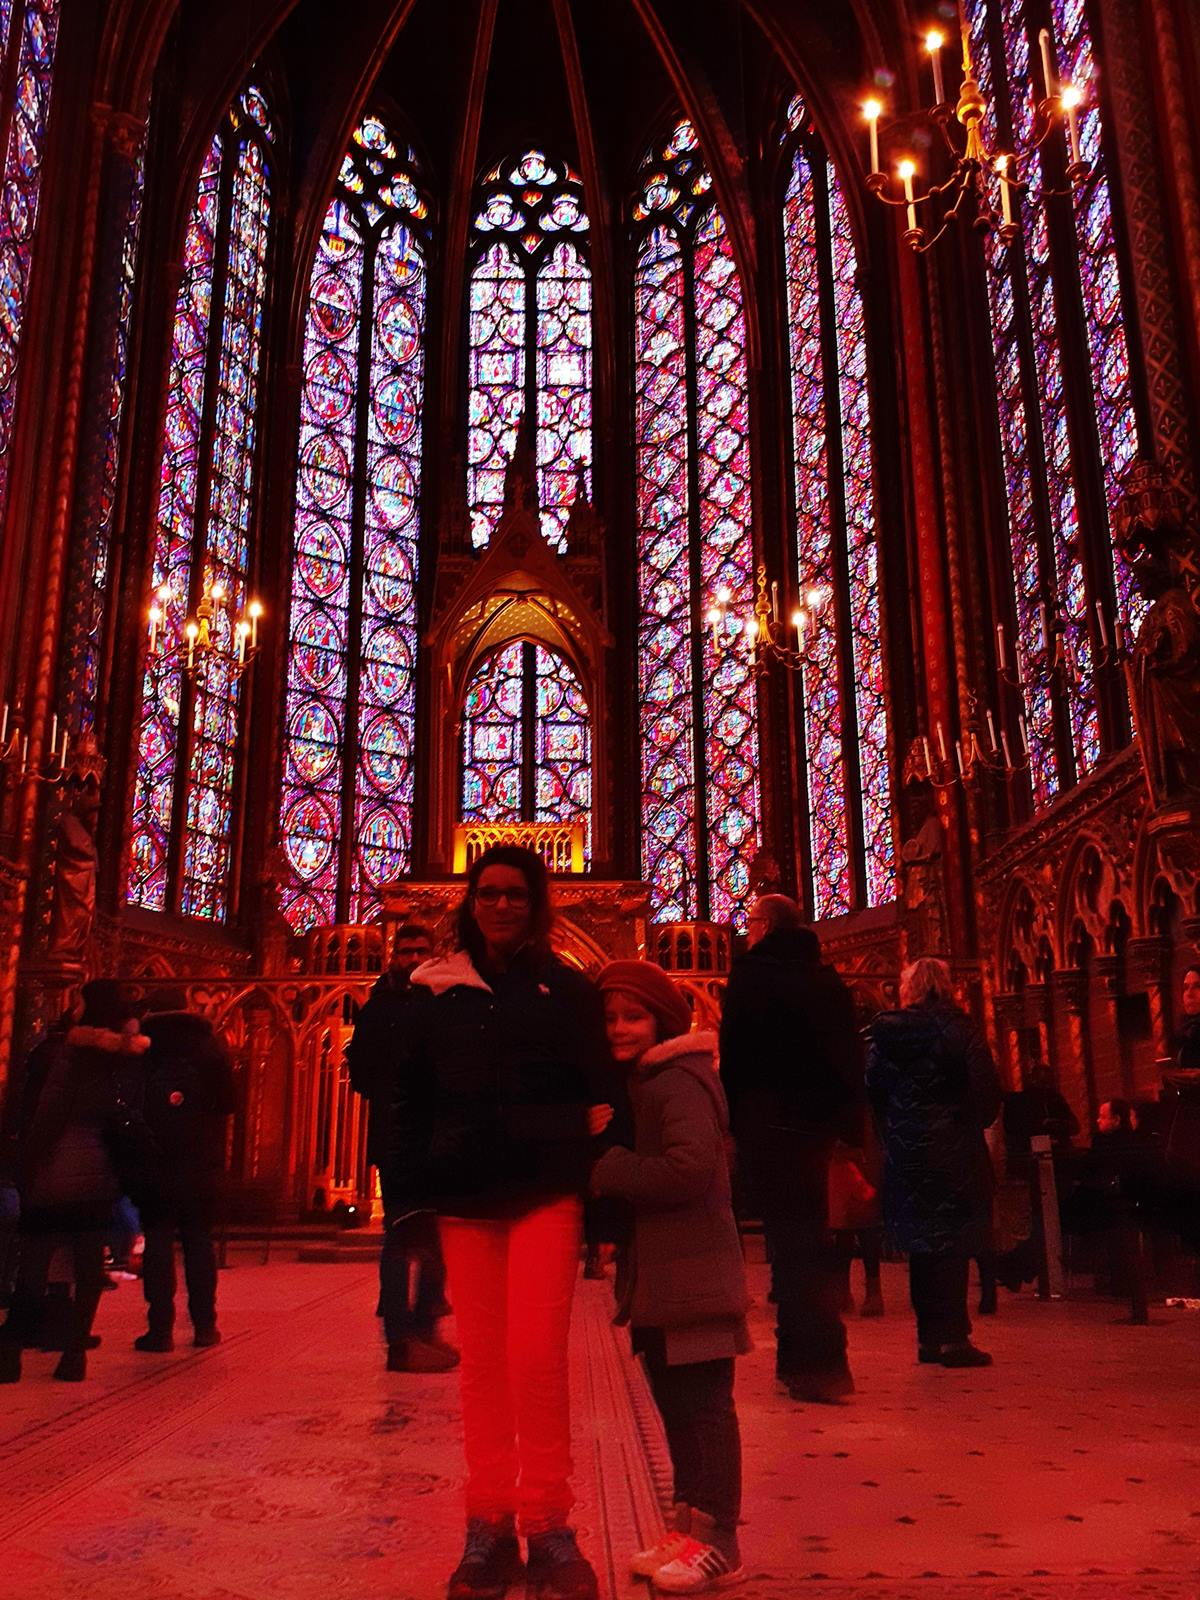 La sainte chapelle paris cite chateletsainte chapelle paris